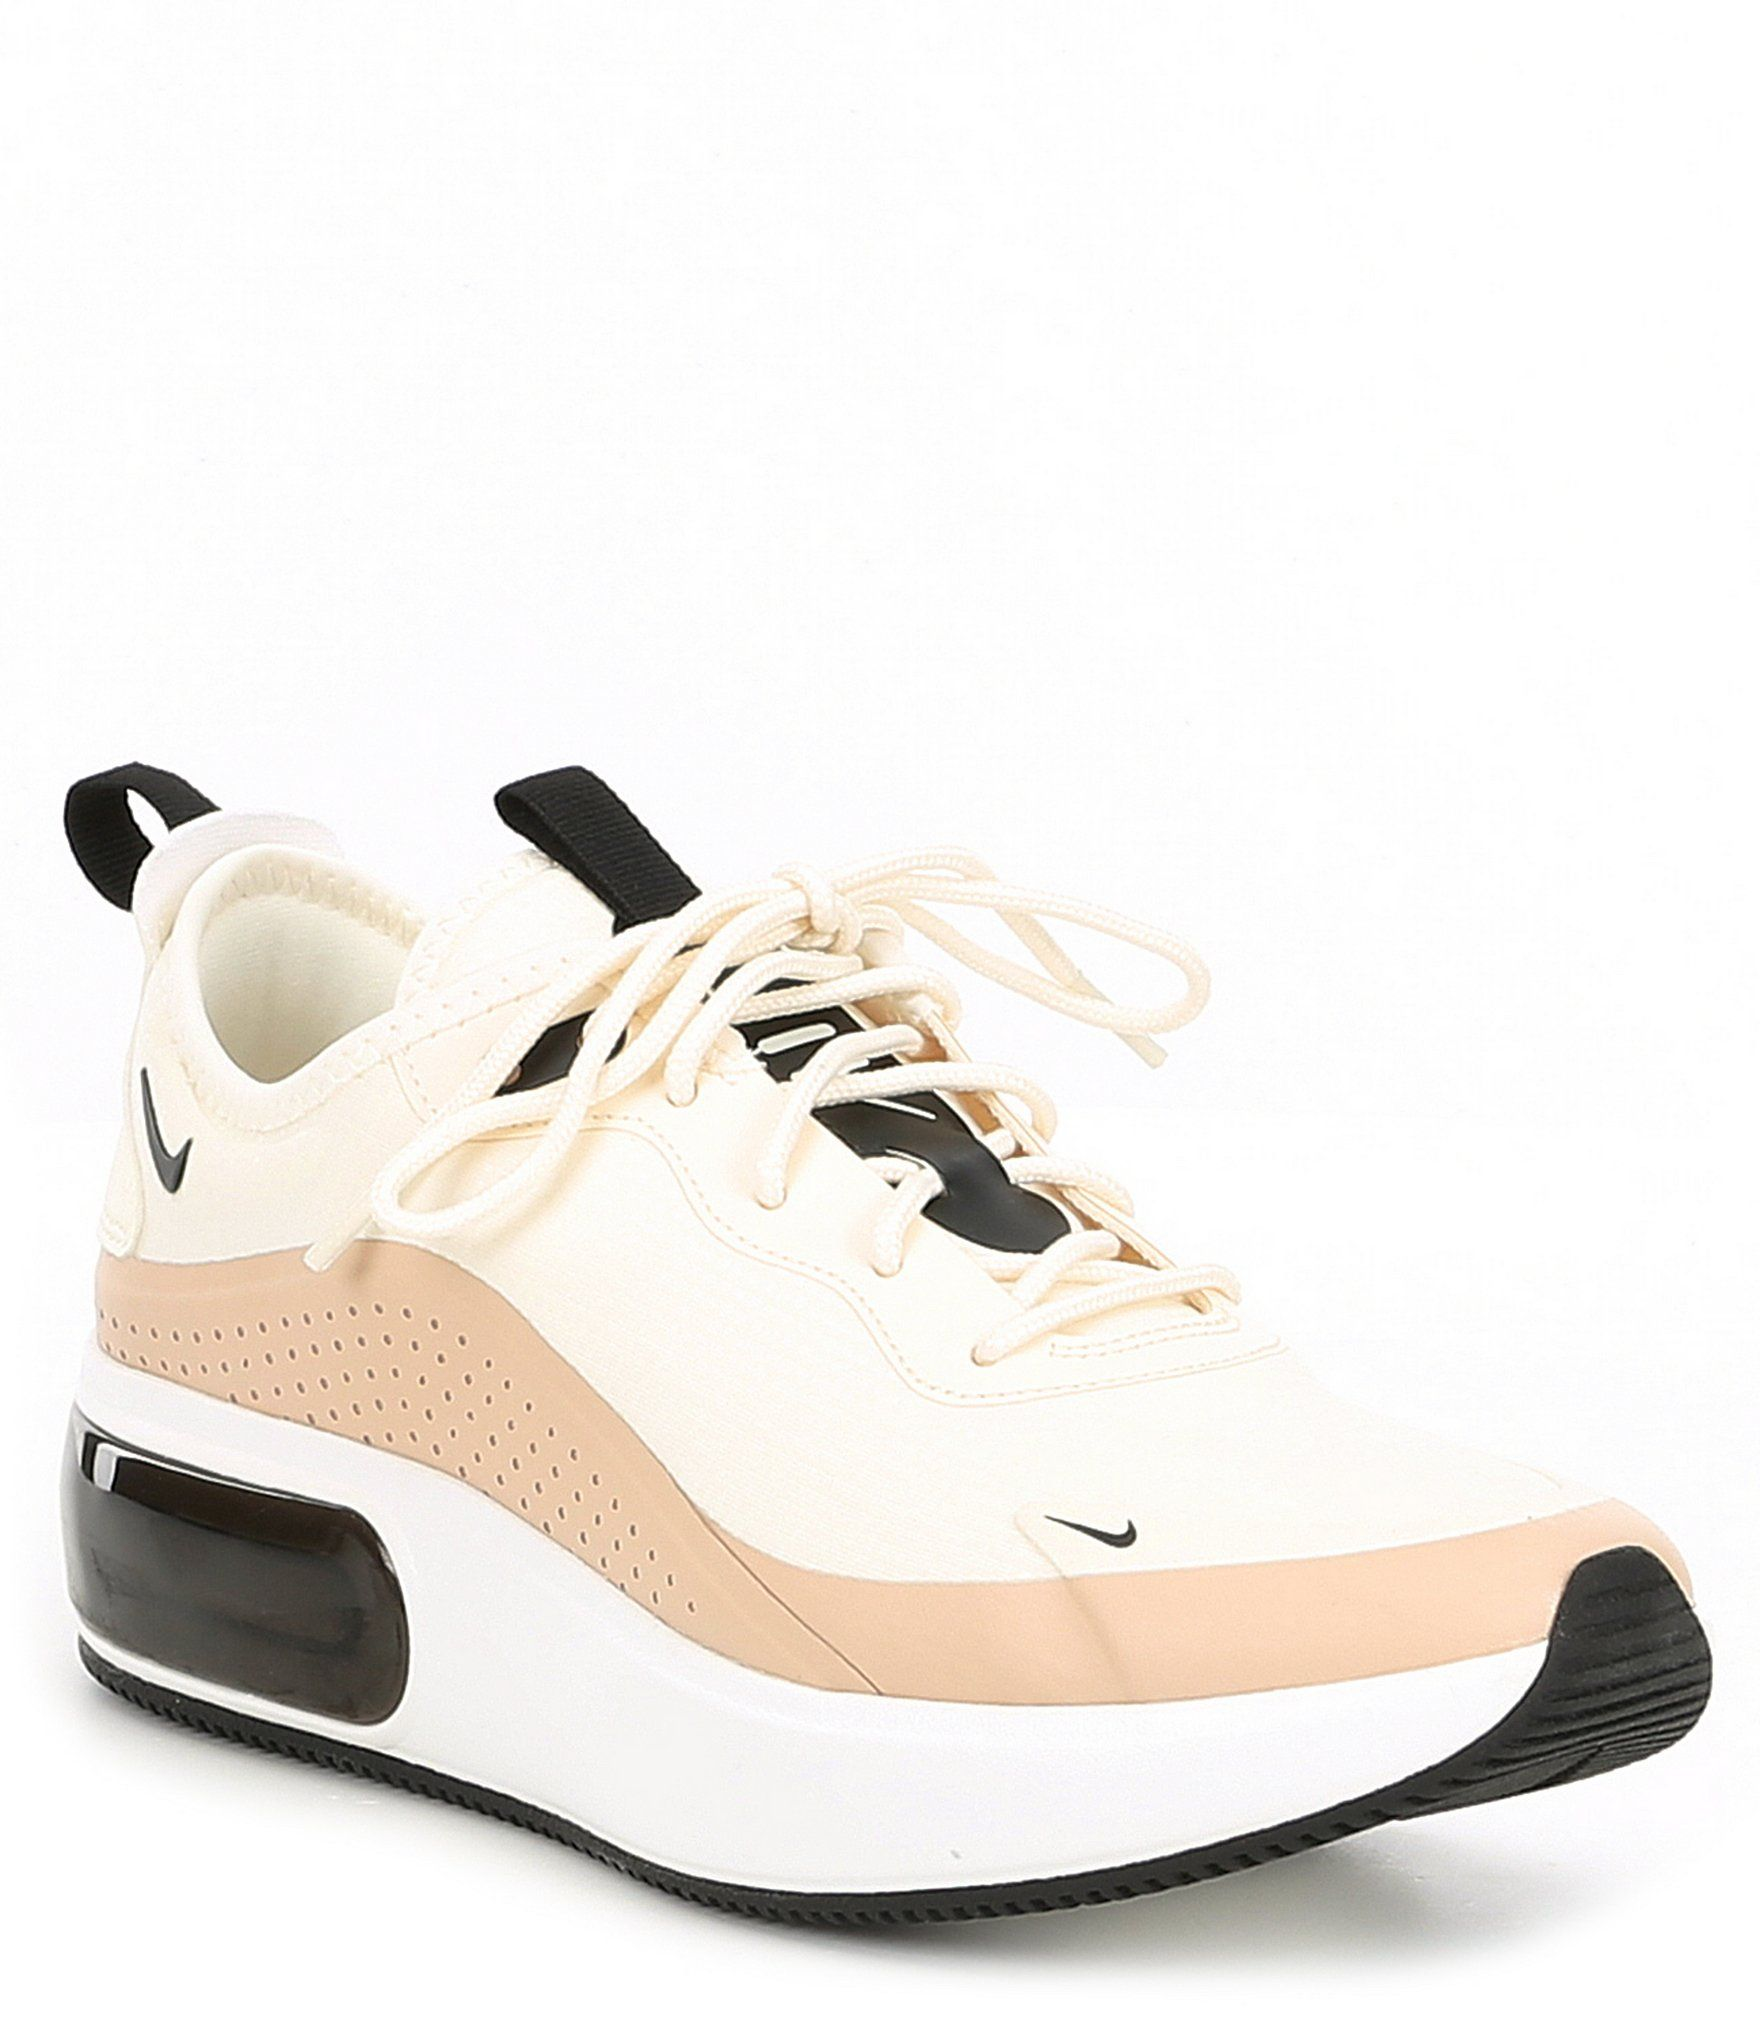 58687ad5ae1 Shop for Nike Women's Air Max Dia Lifestyle Shoe at Dillards.com ...